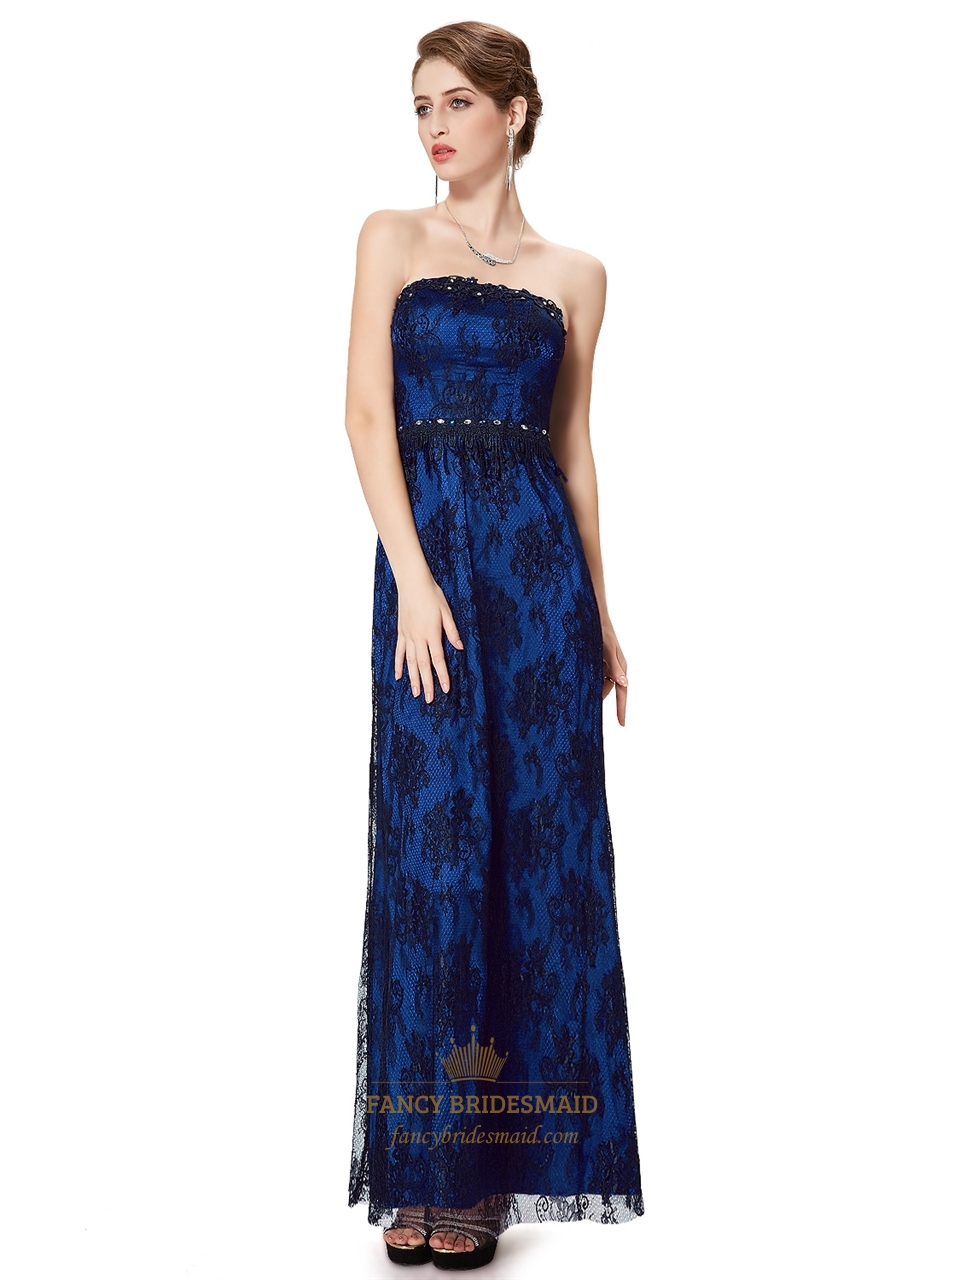 Royal blue and black prom dress fancy bridesmaid dresses for Blue and black wedding dresses